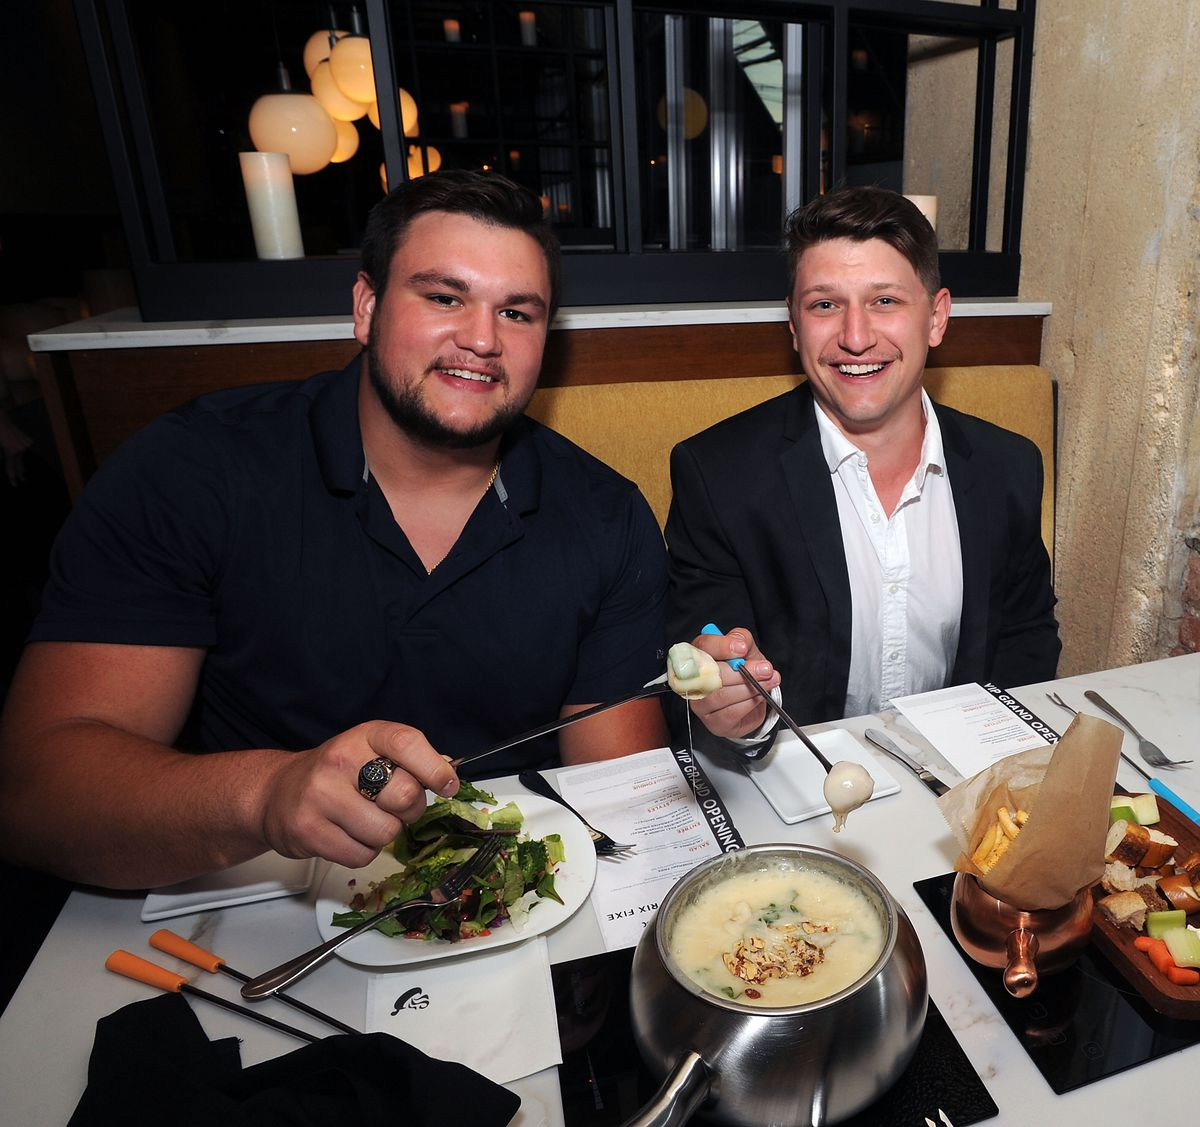 The Melting Pot of Red Bank Grand Opening Celebration